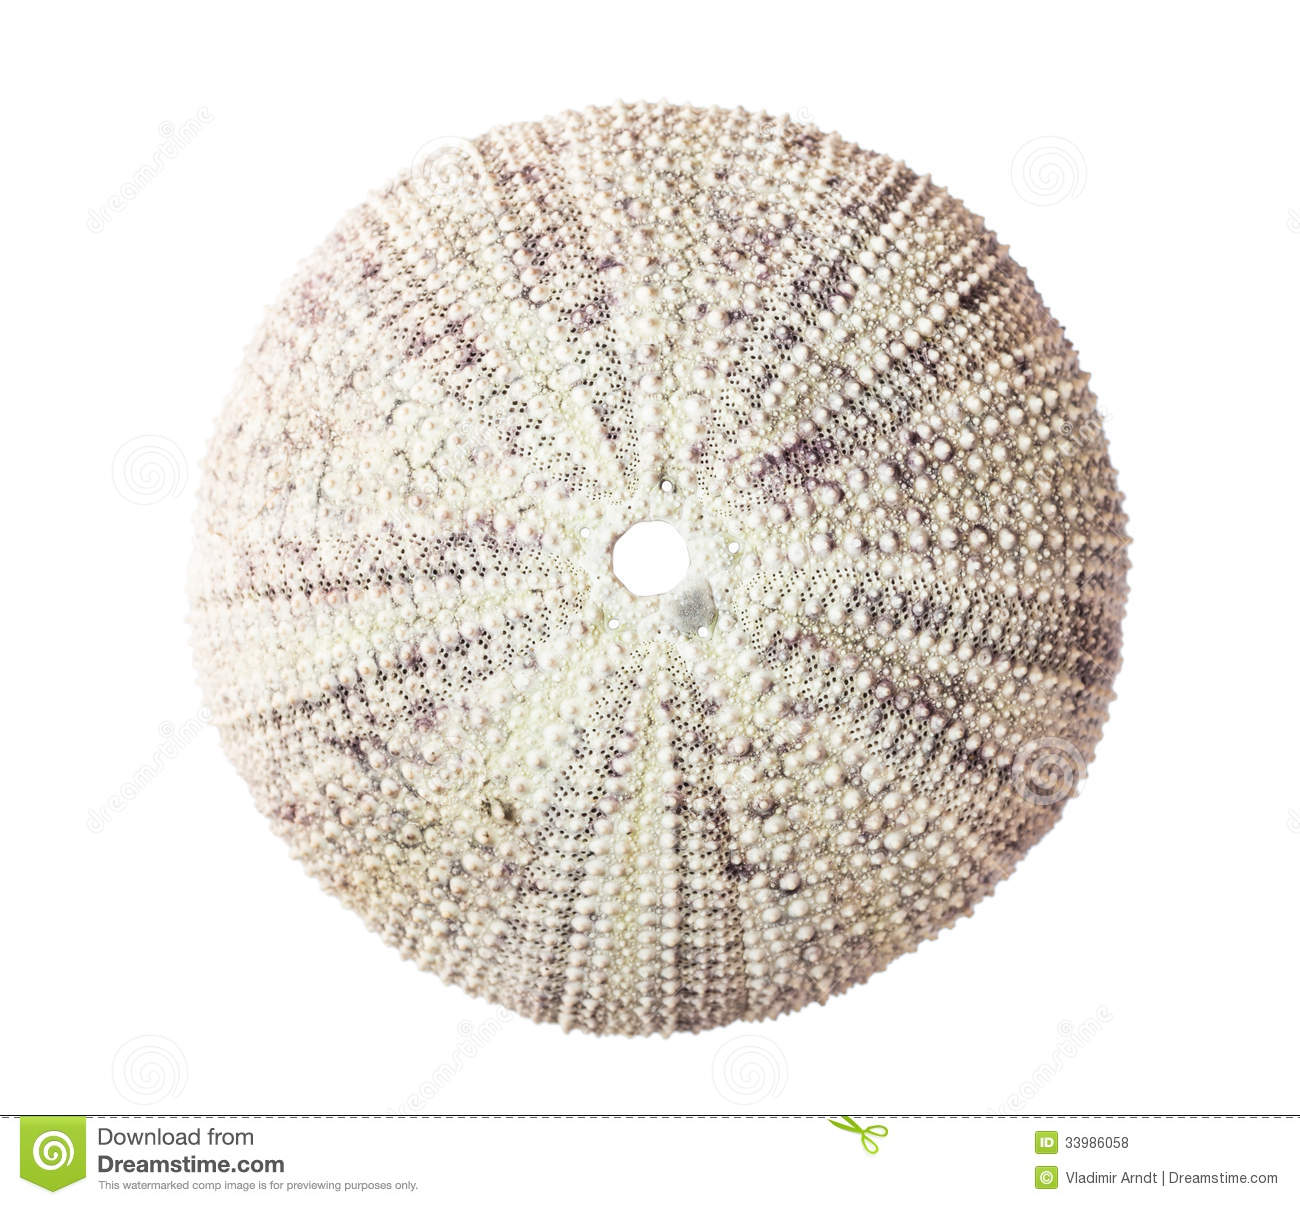 White sea urchin shell - photo#15